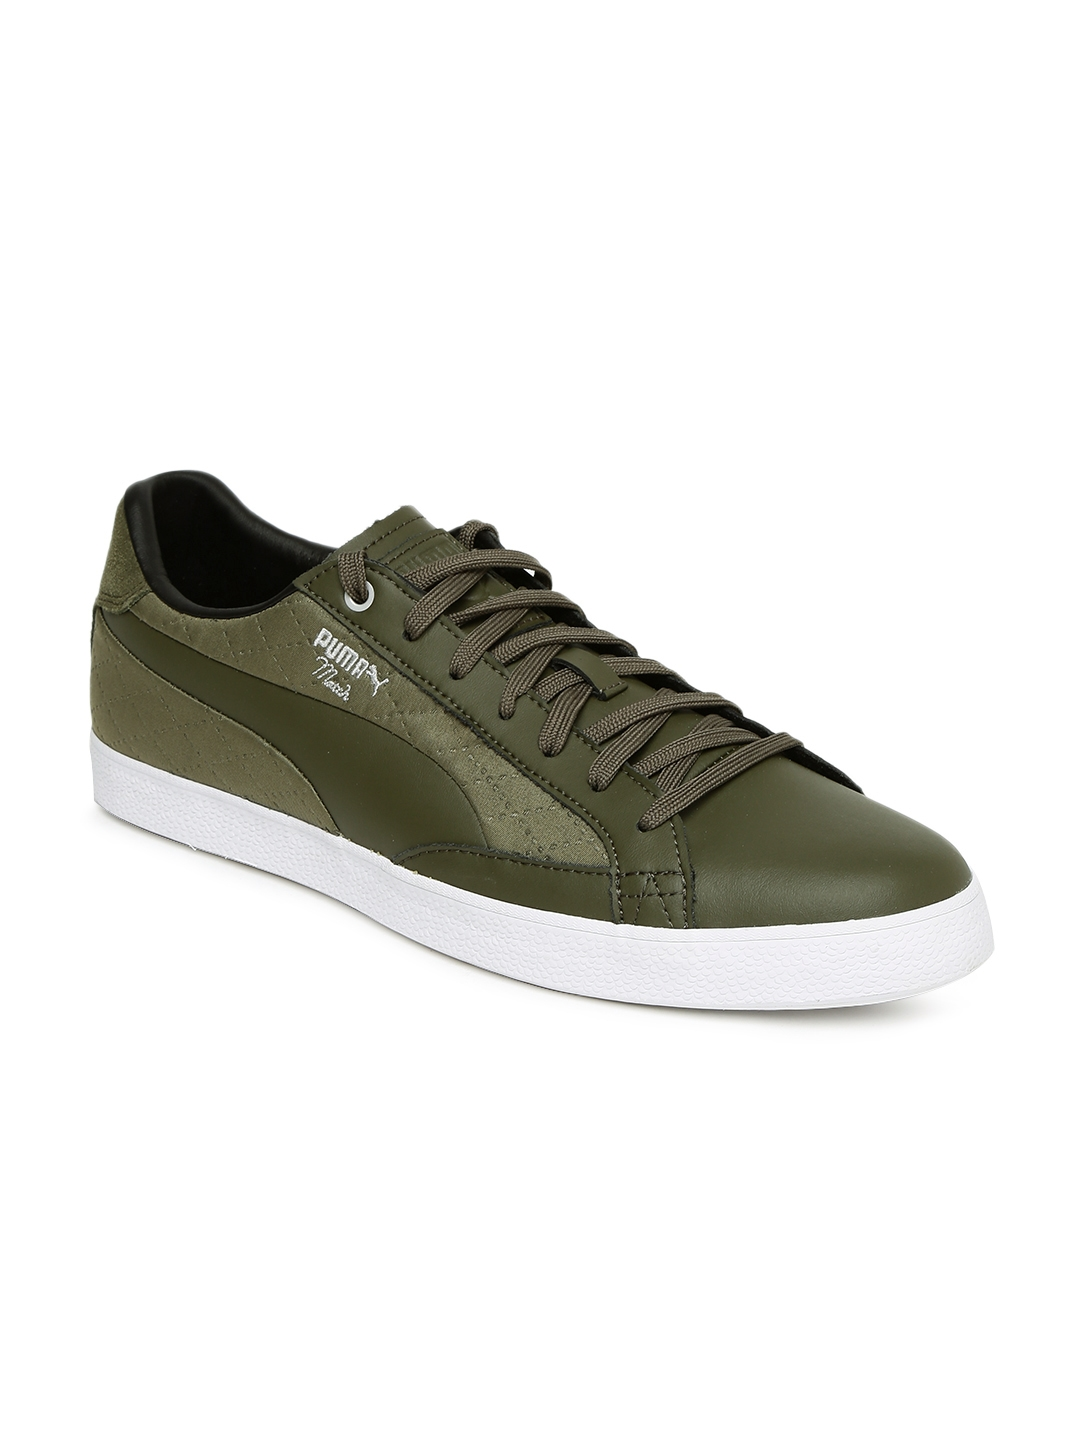 53ed29bbbeb Buy Puma Men Olive Green Match Vulc 2 Quilted Sneakers - Casual ...